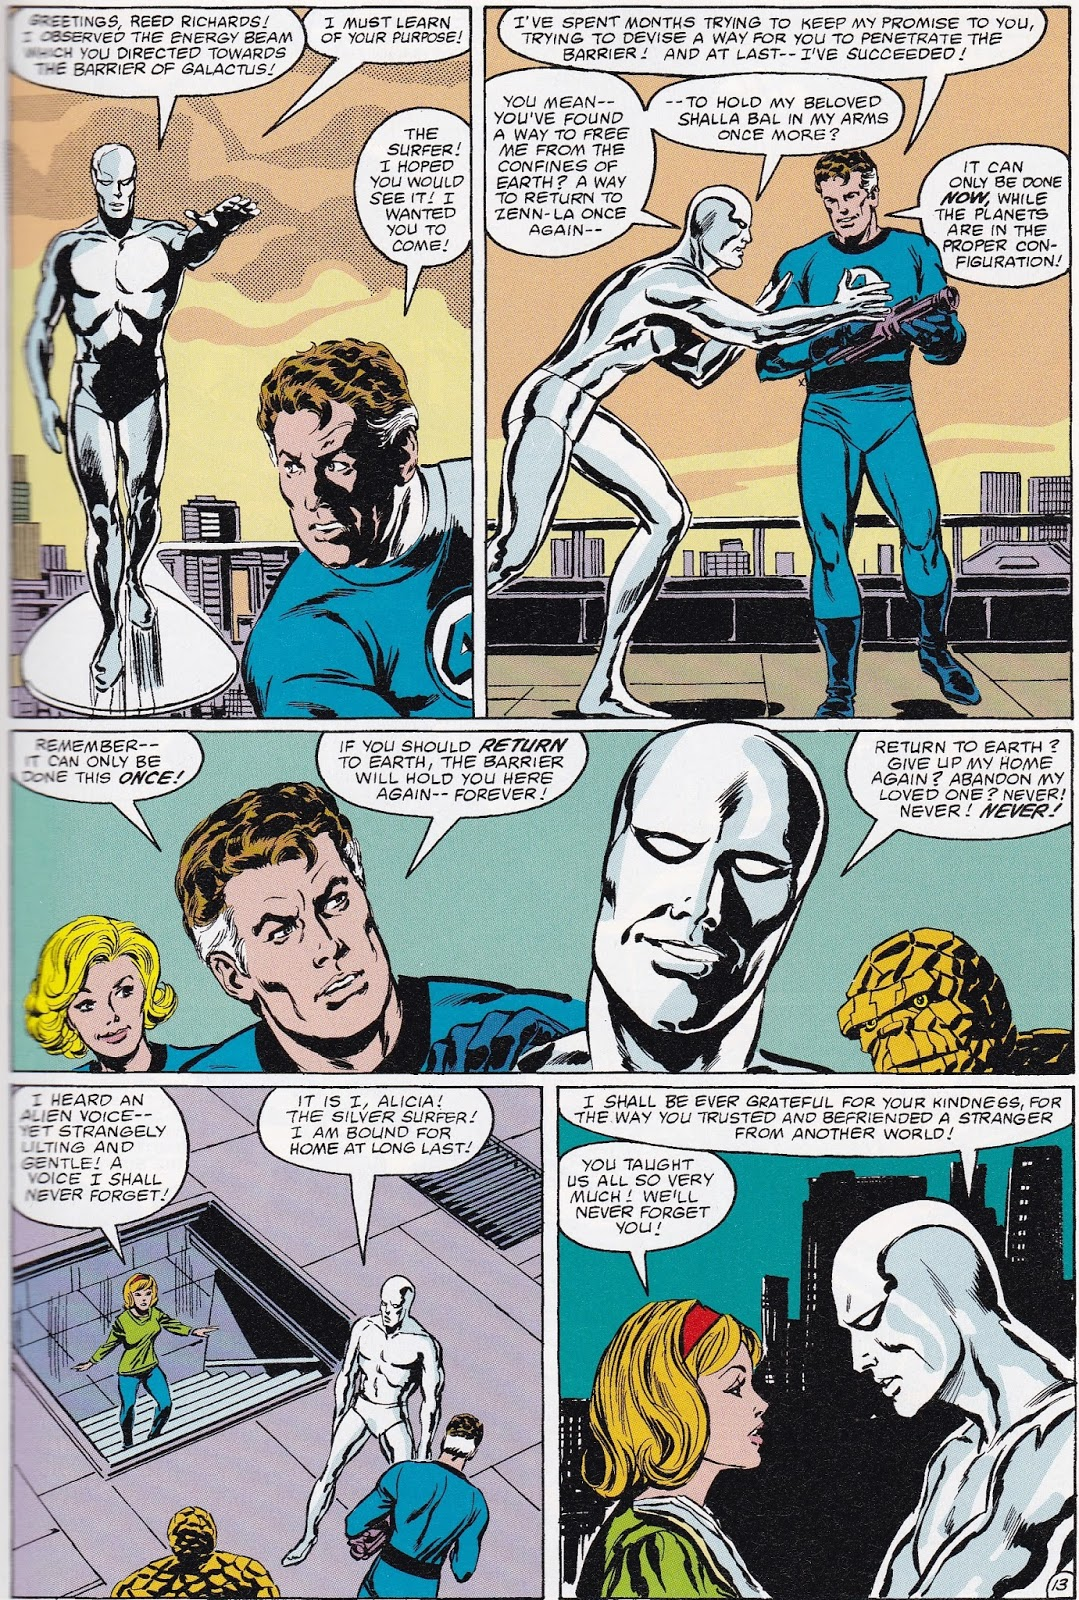 Again as I mentioned, the Surfer's origin from Silver Surfer #1 is  recapped, as are his early appearances in the Fantastic Four (circa #s  48-61) and the Dr. ...